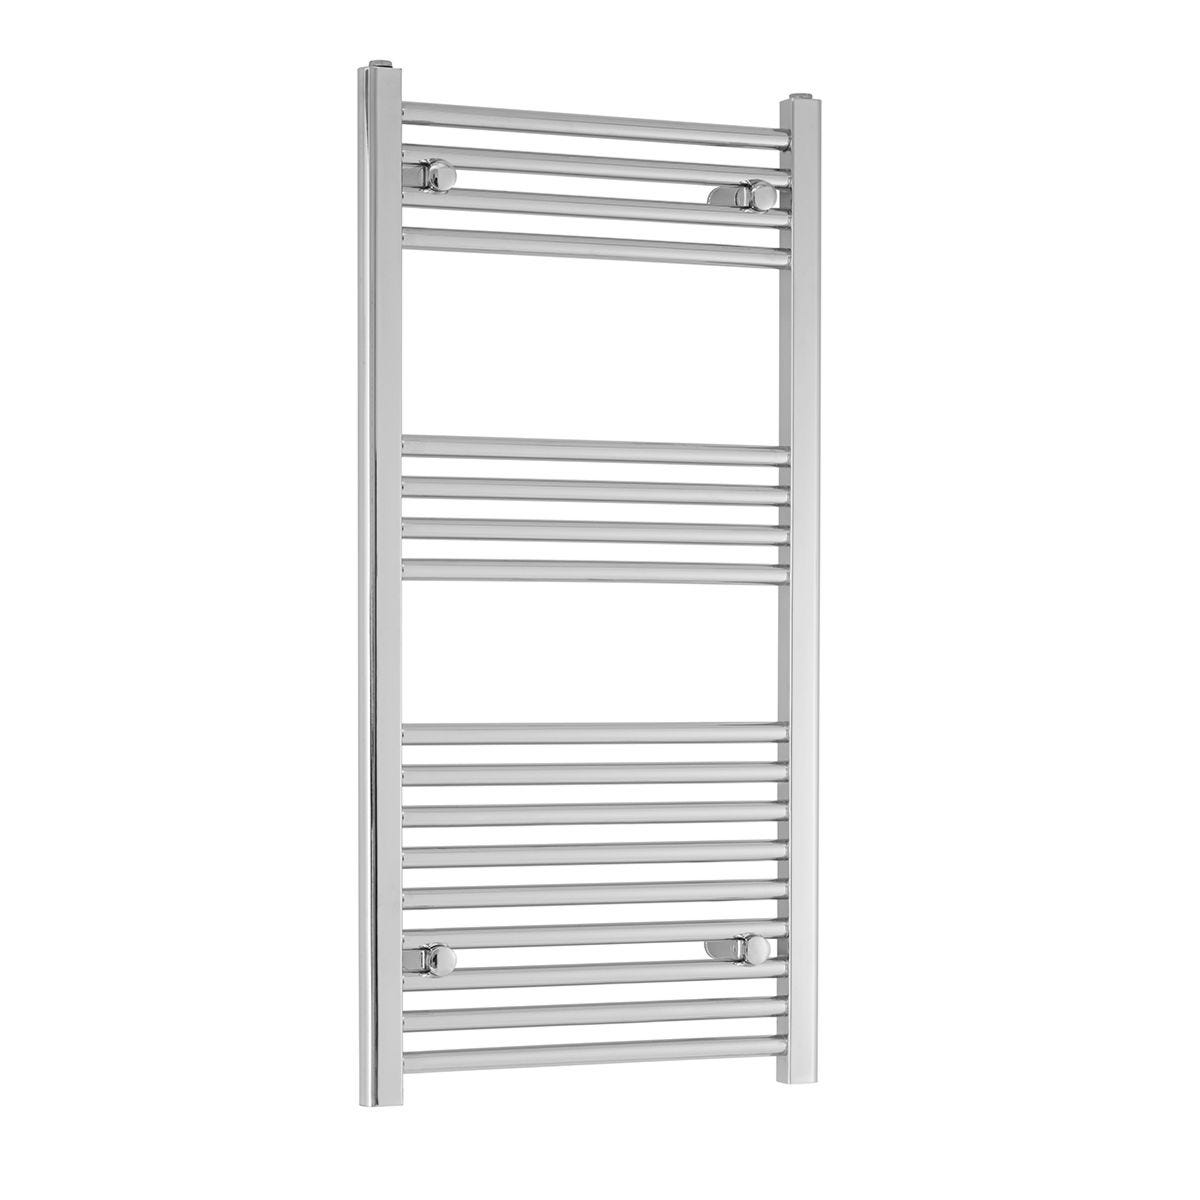 Heating Style Blythe Ladder Rail 800x600mm Straight - Chrome